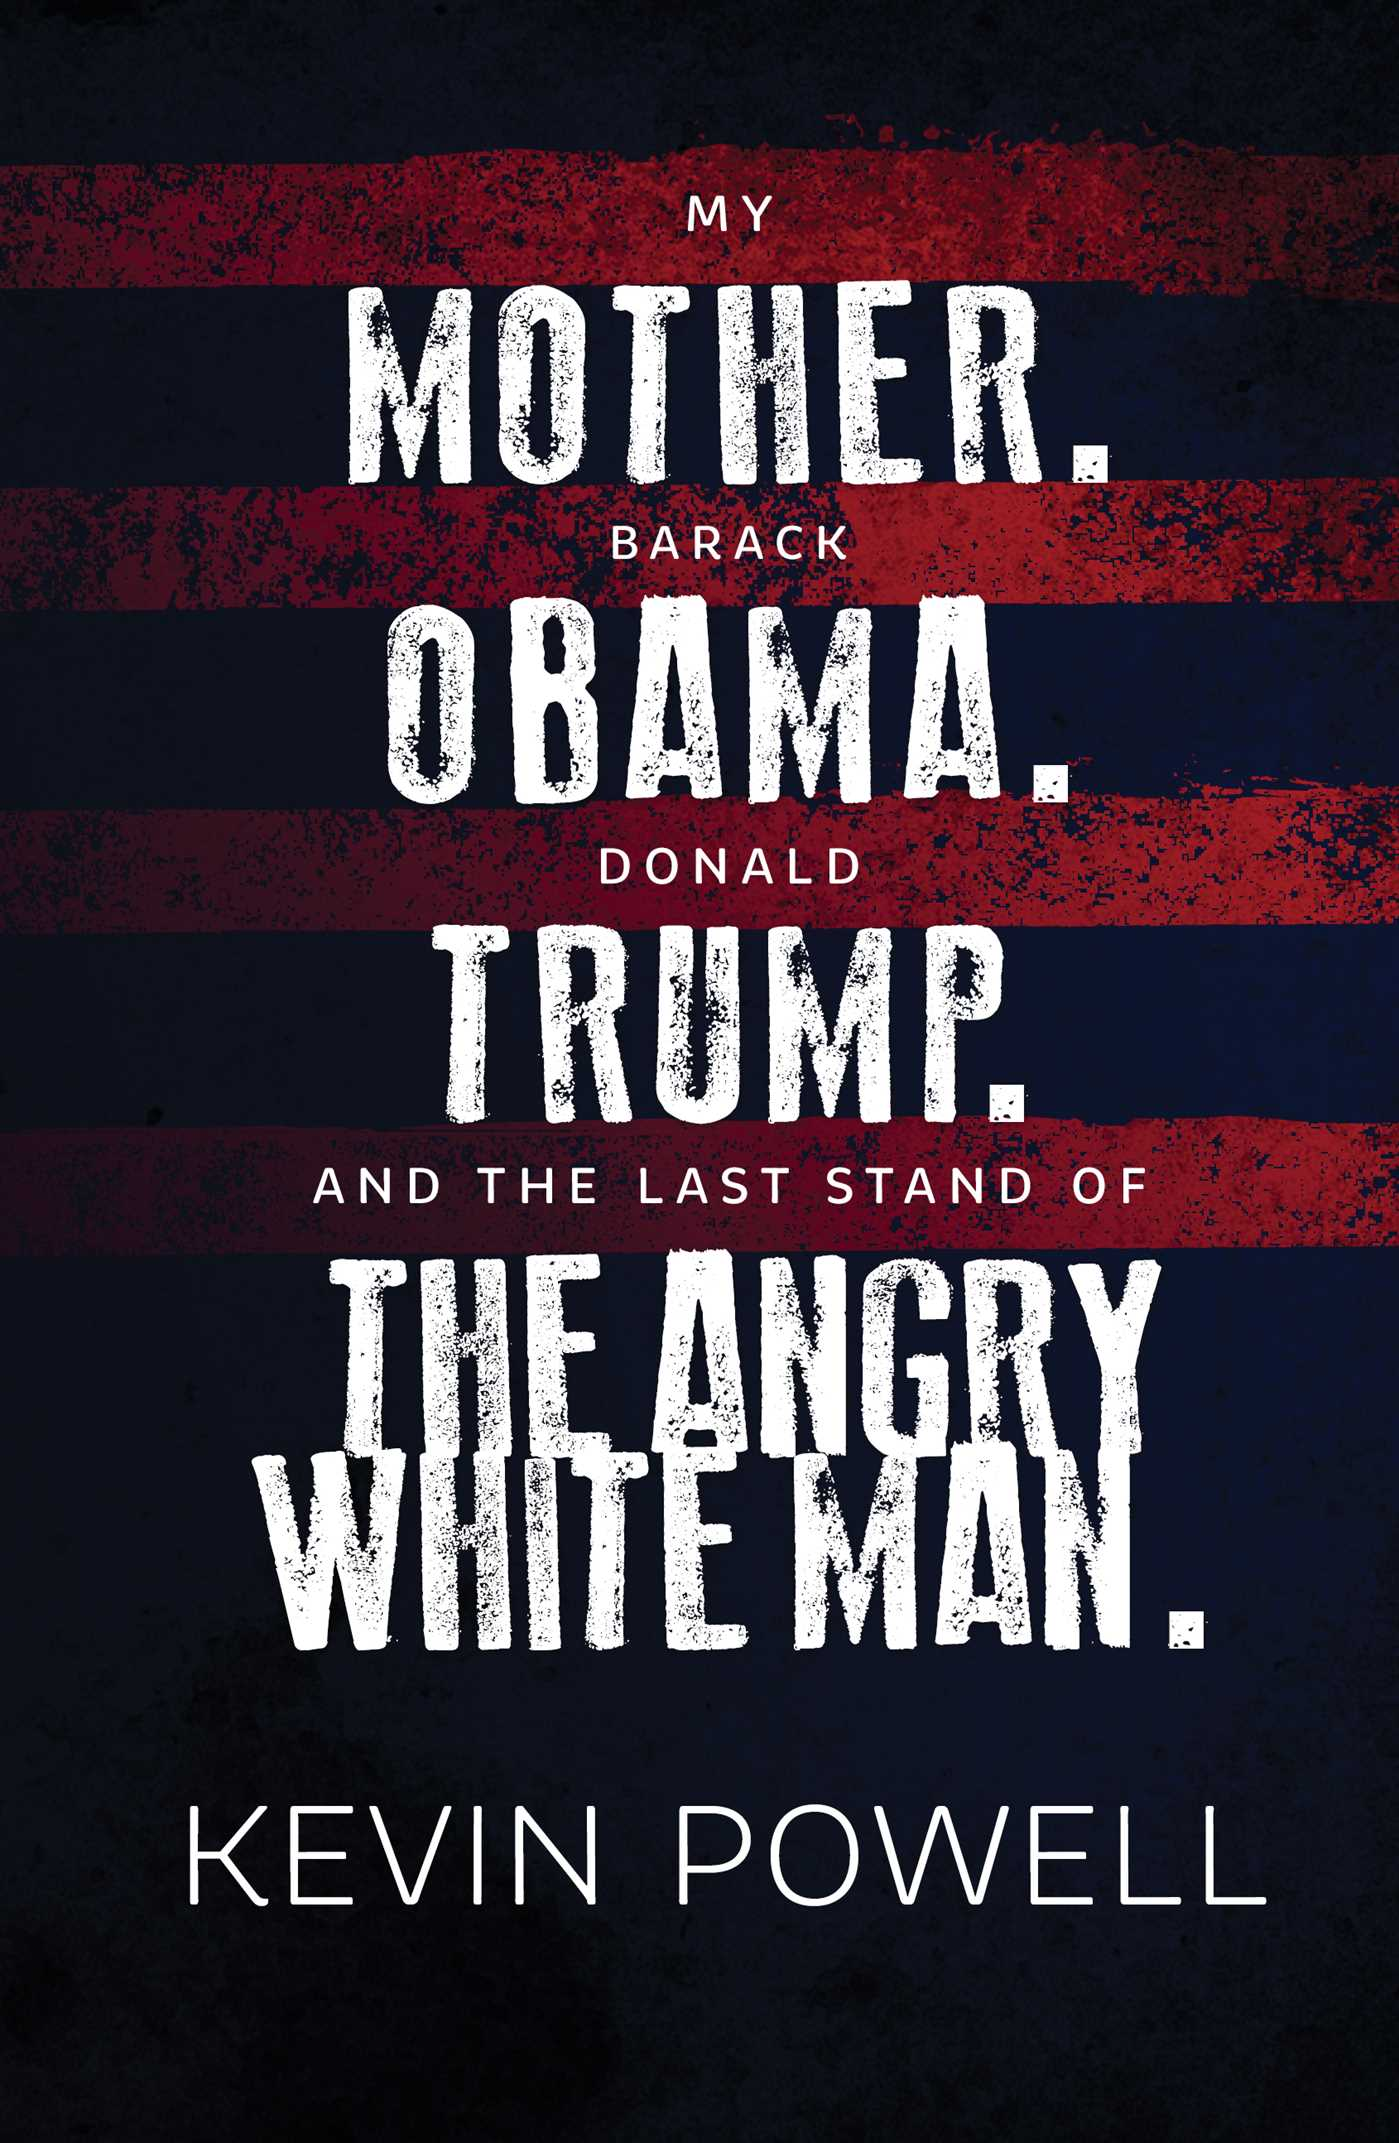 My mother barack obama donald trump and the last stand of the angry white man 9781501198809 hr